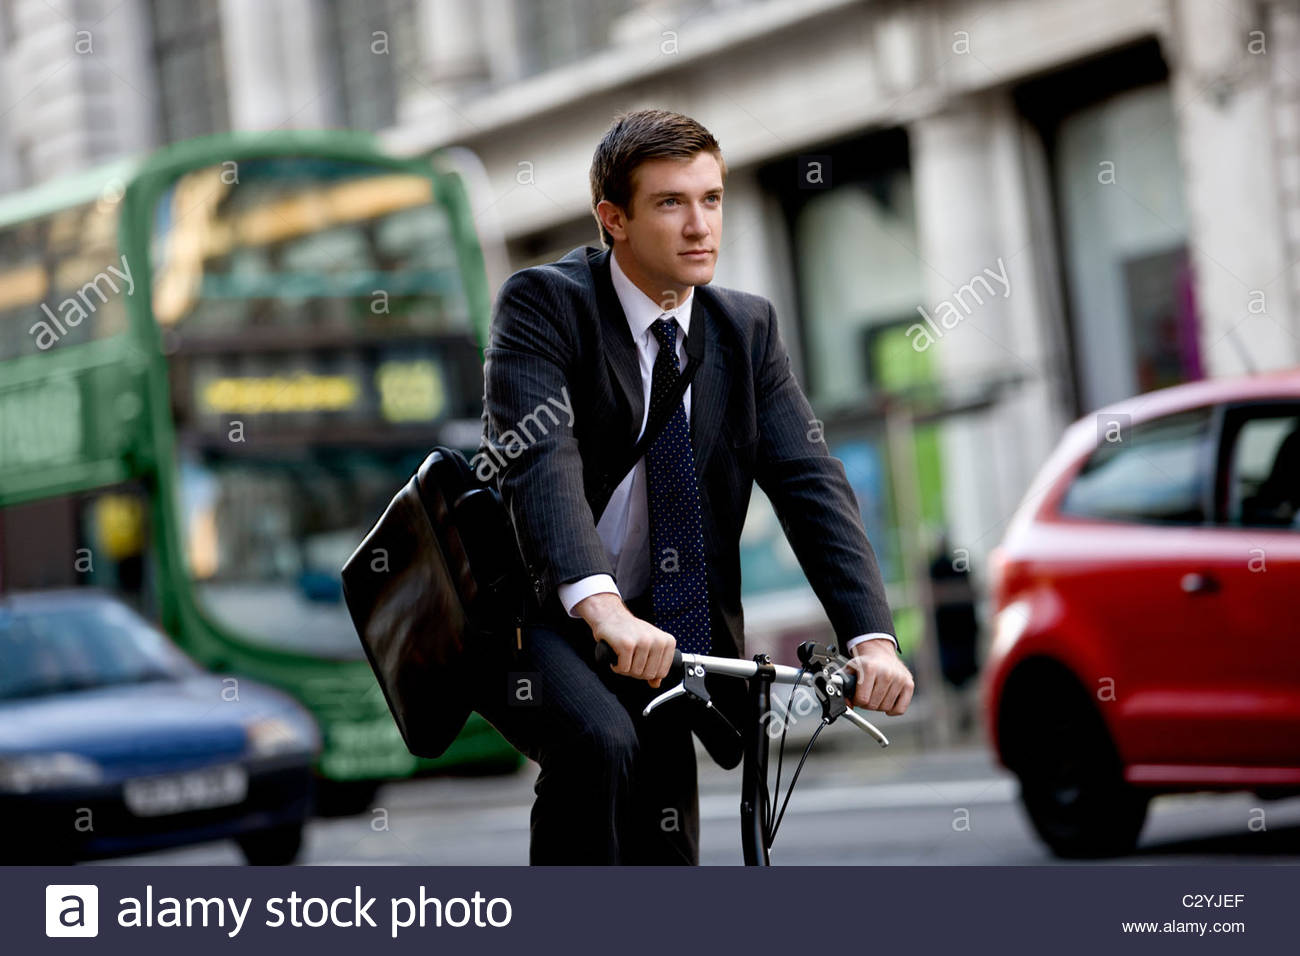 A businessman commuting to work - Stock Image